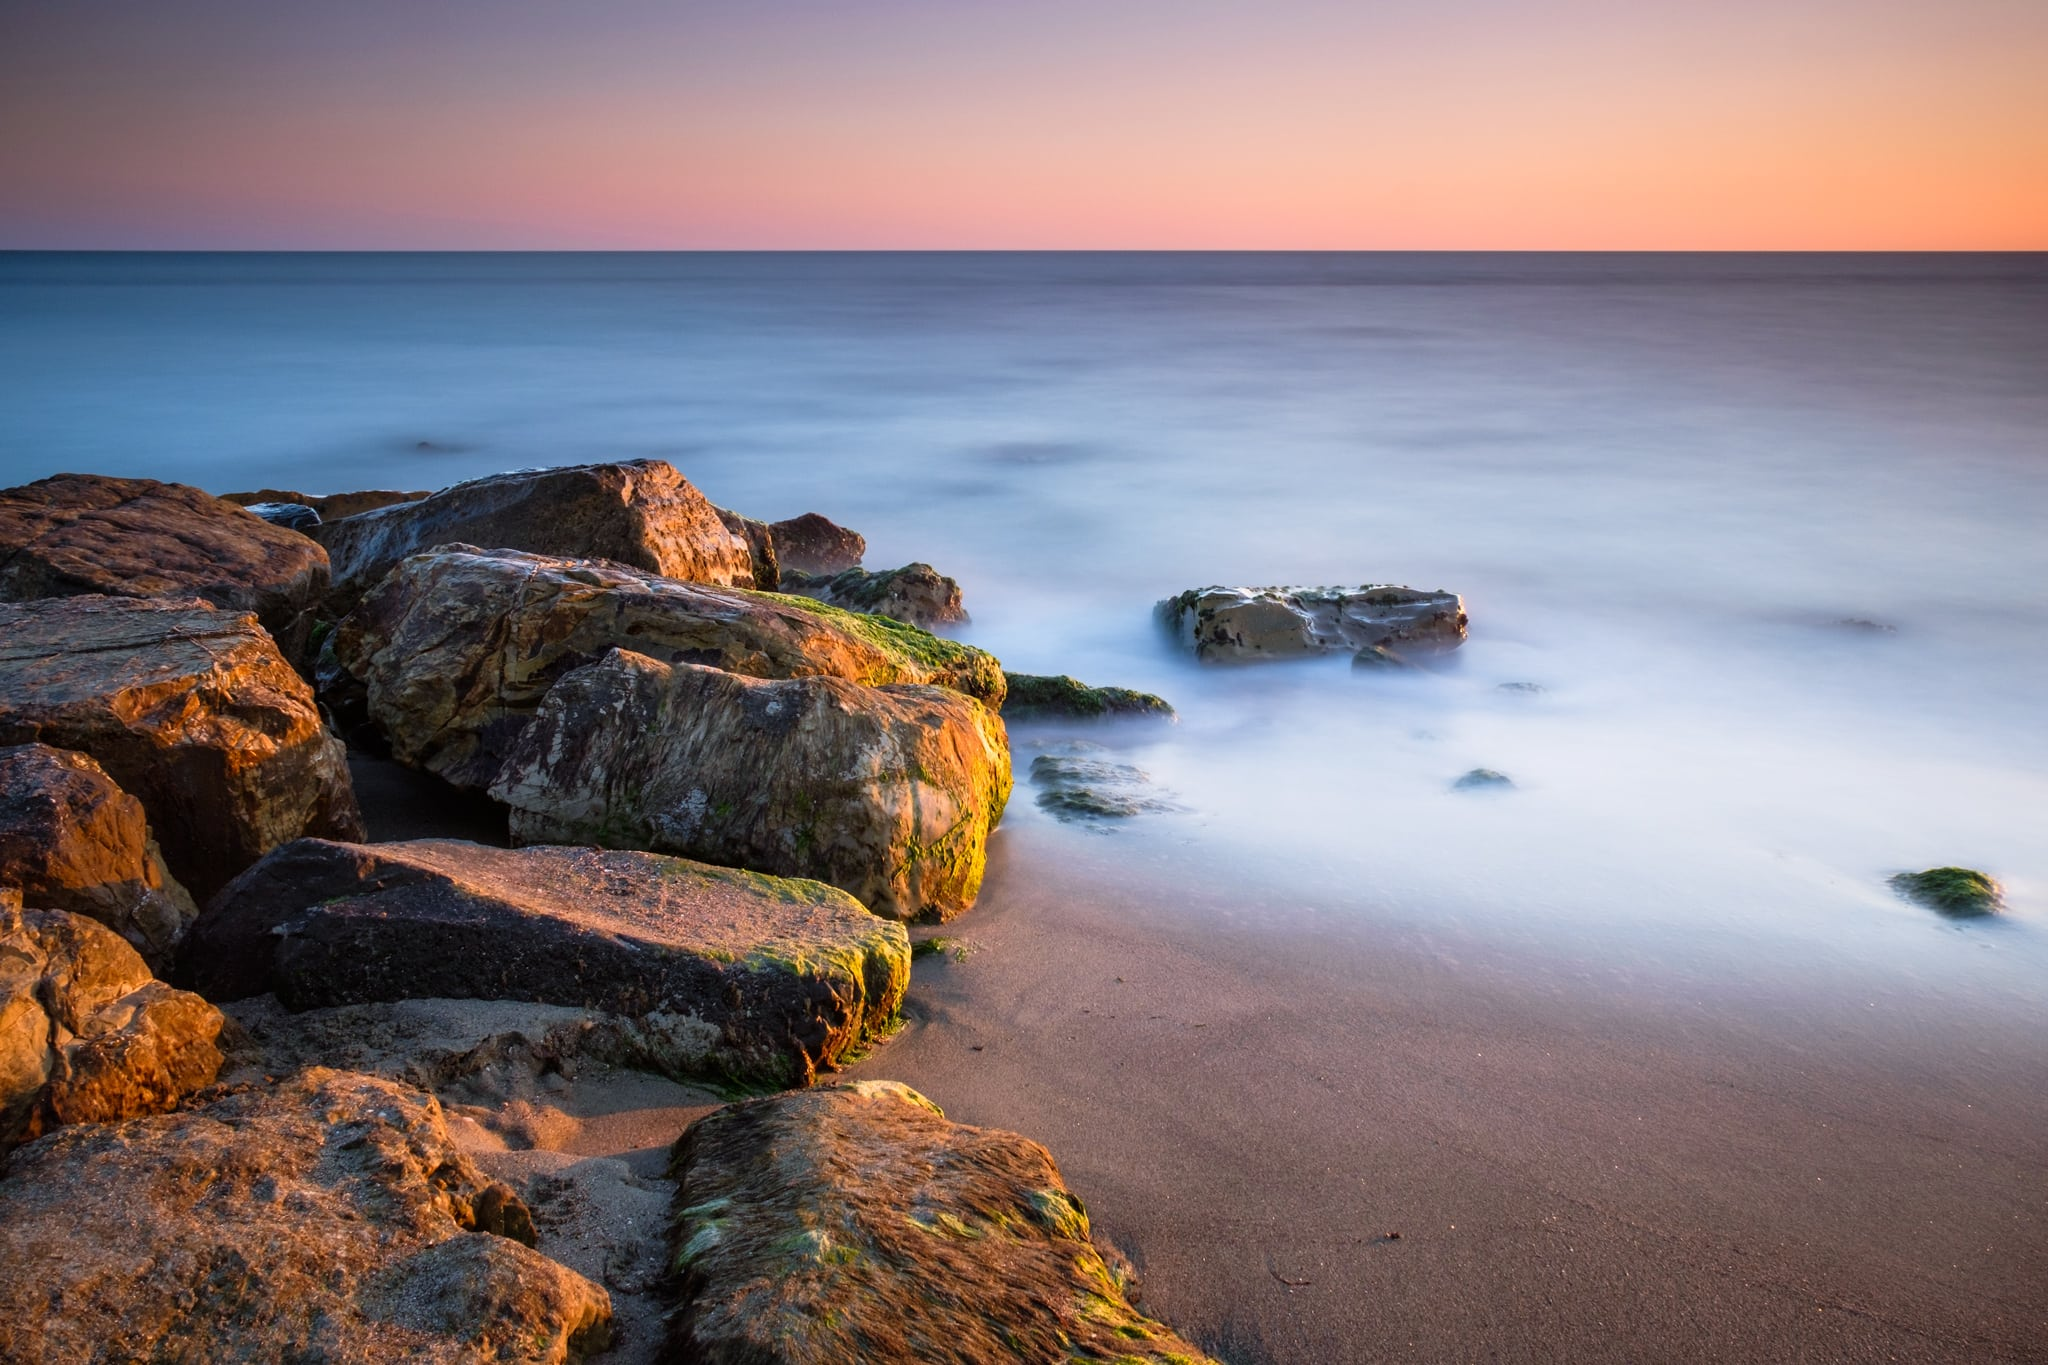 Long exposure photography ideas of rocks on the shore at sunset. Sea water looks smooth and silky.